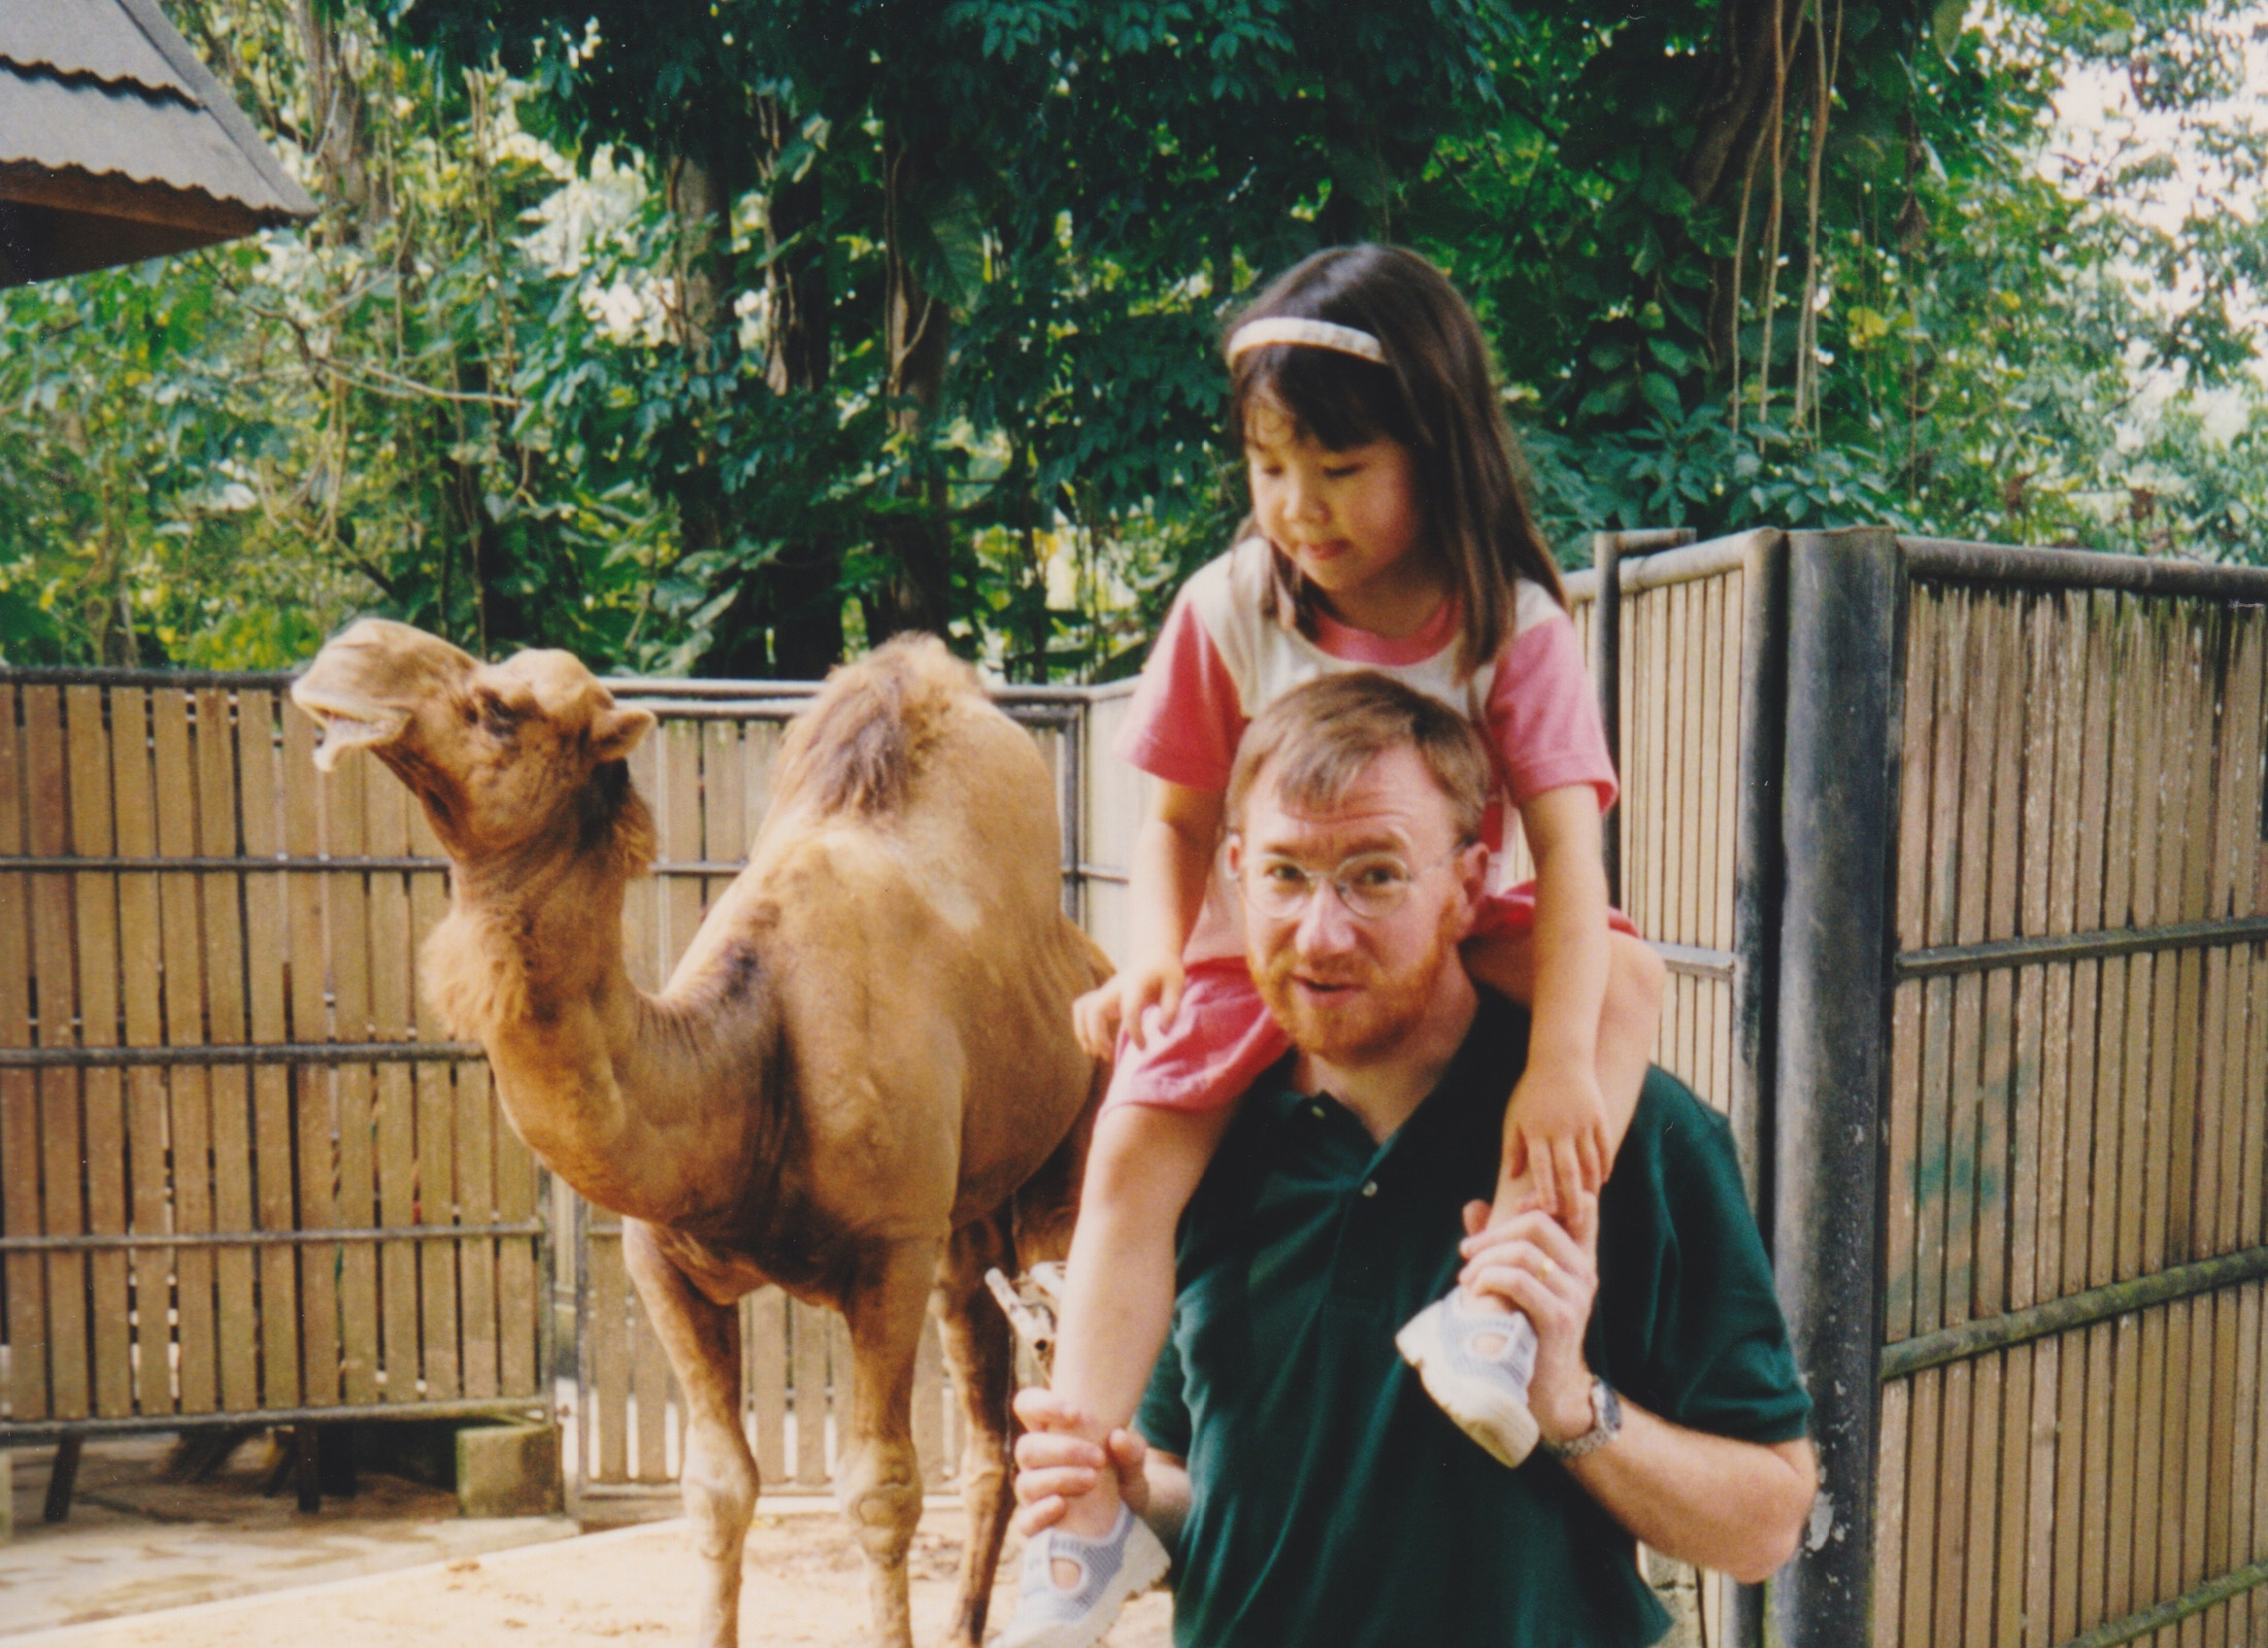 Papa Fineron & Daughter Ailsa ft. Unrelated Camel